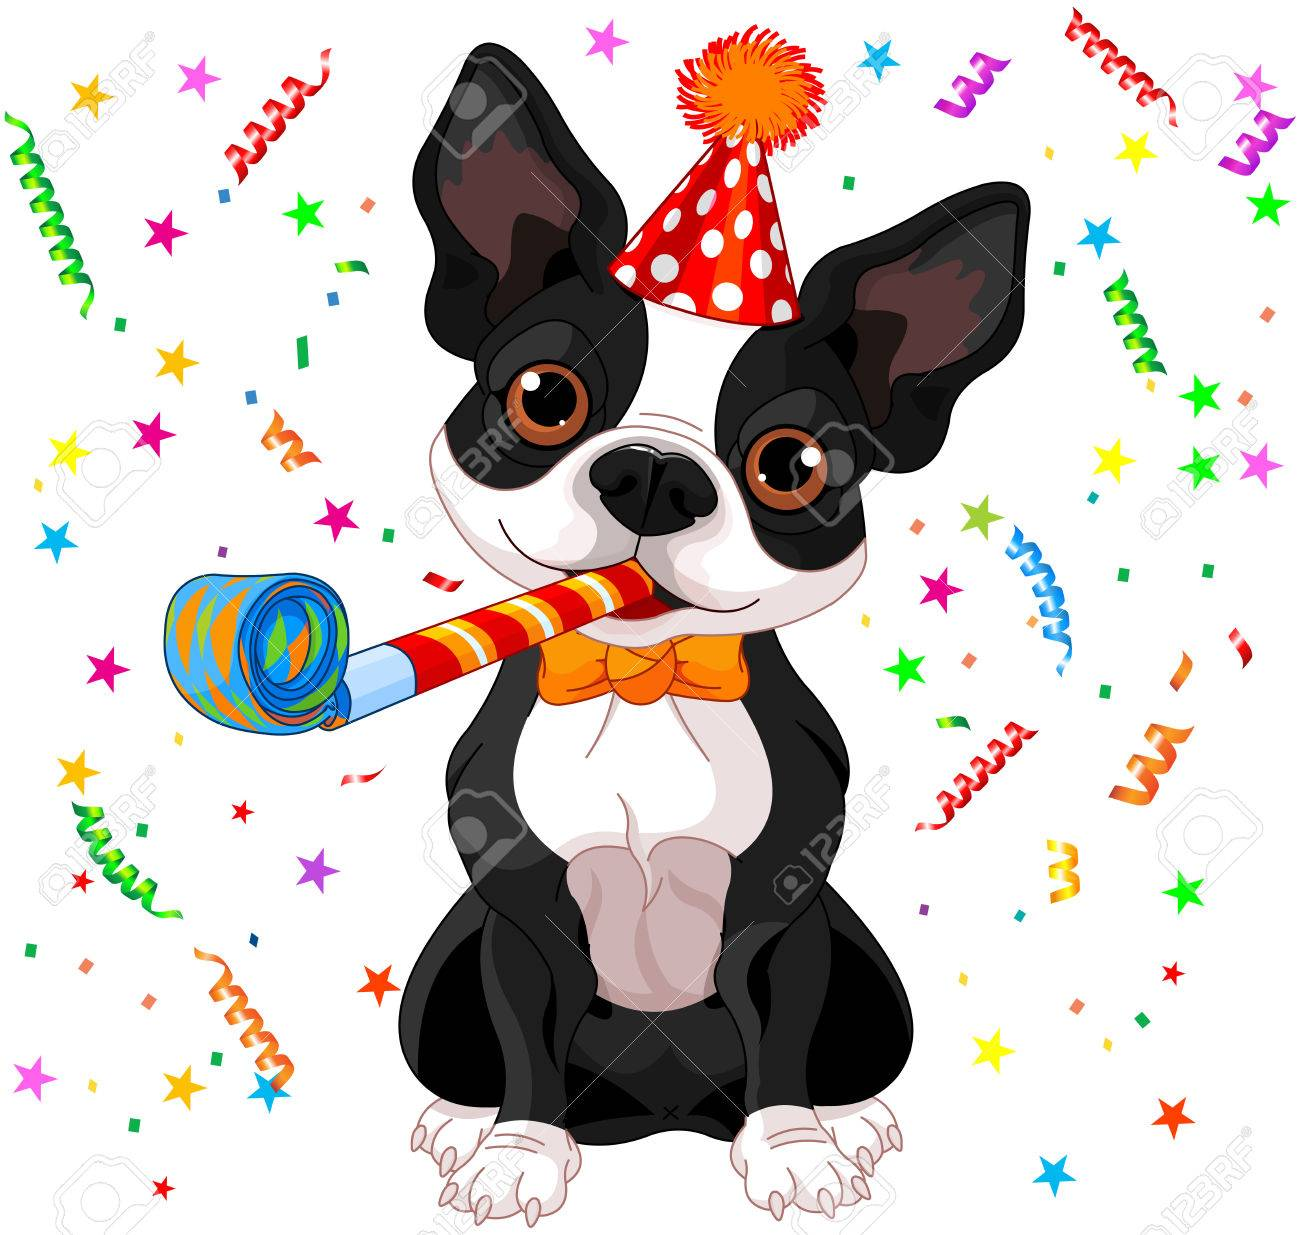 Le Fox Terrier /caractéristiques 35588778-illustration-of-cute-boston-terrier-celebrating